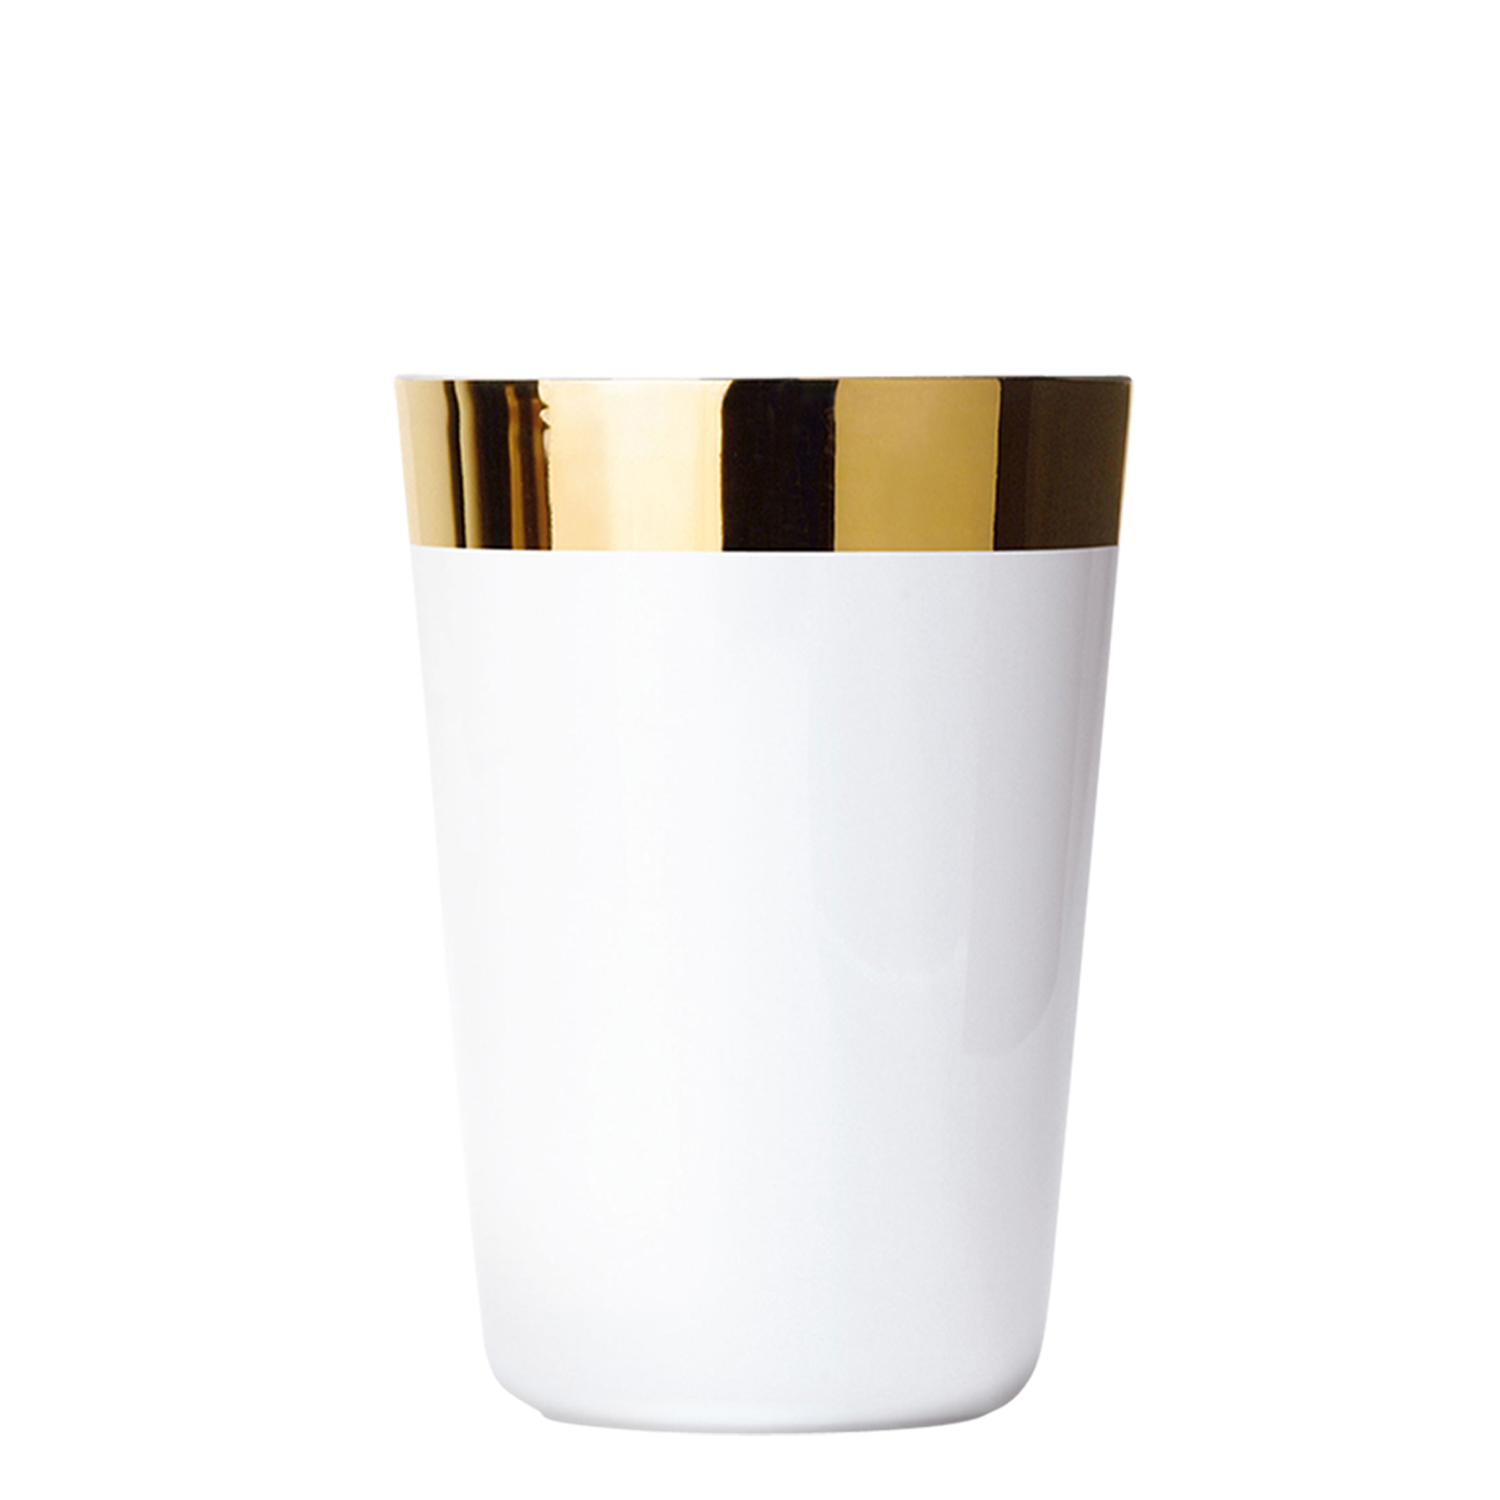 Wasserbecher White, Plain, glatt